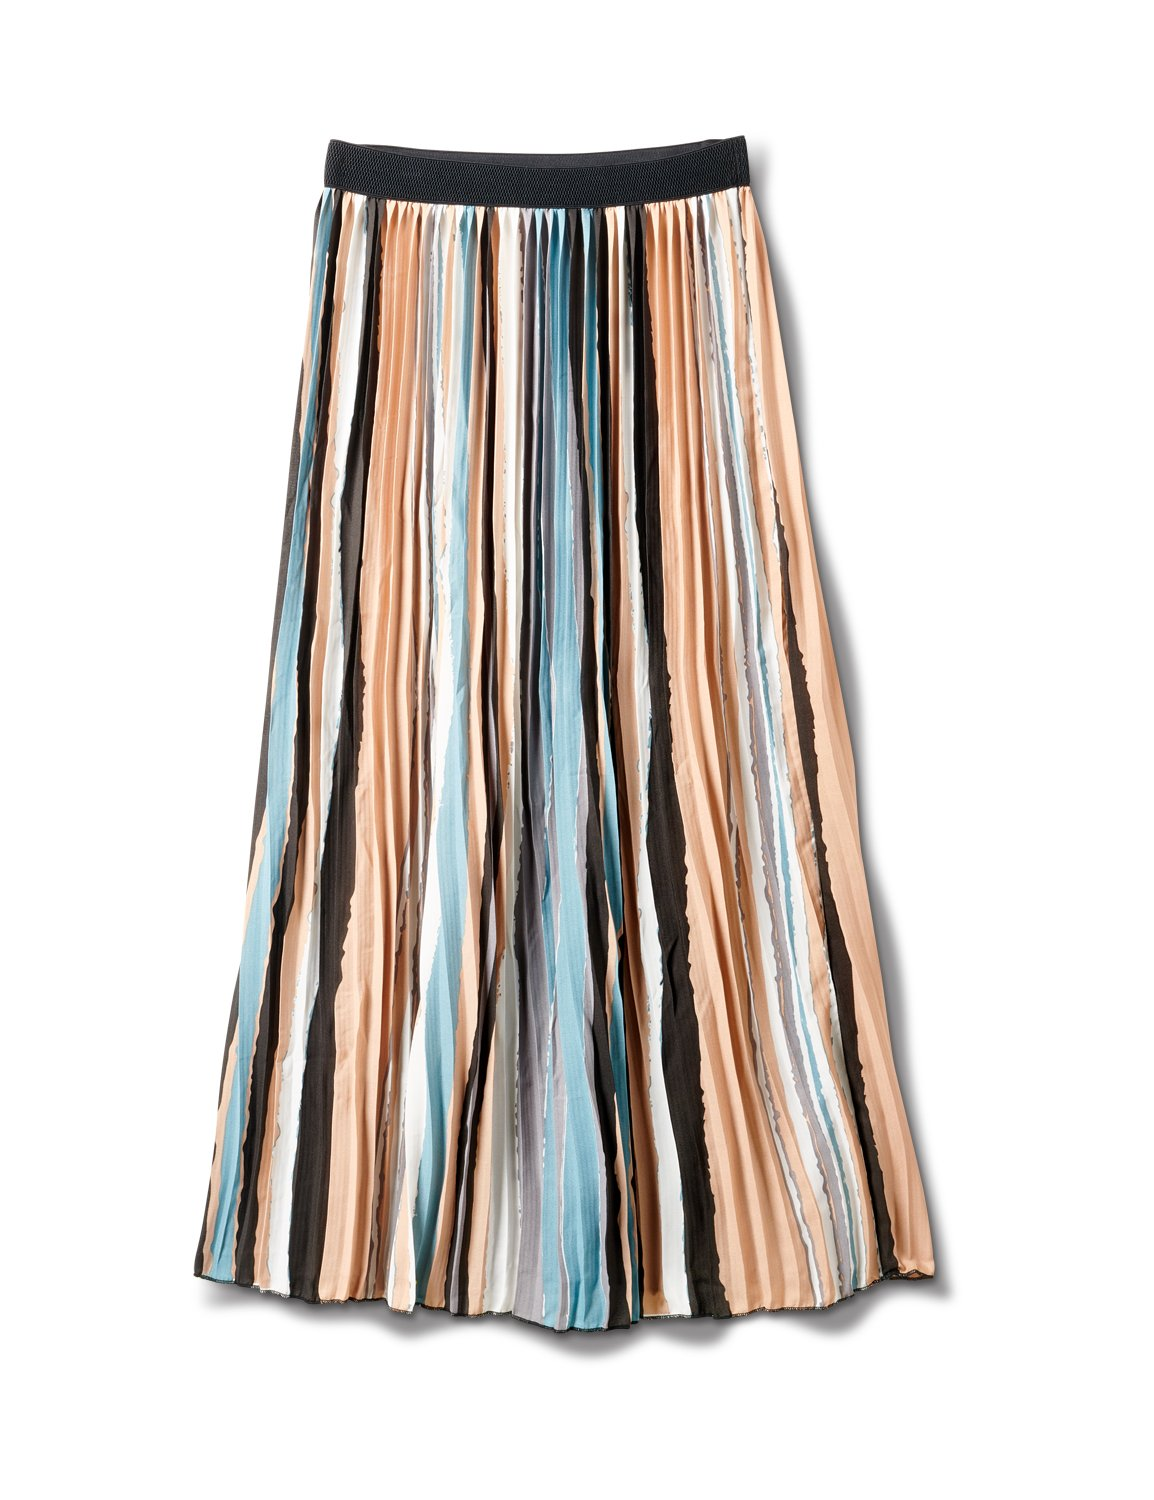 Stripe Pleated Skirt With Contrast Elastic Waistband -Multi - Front